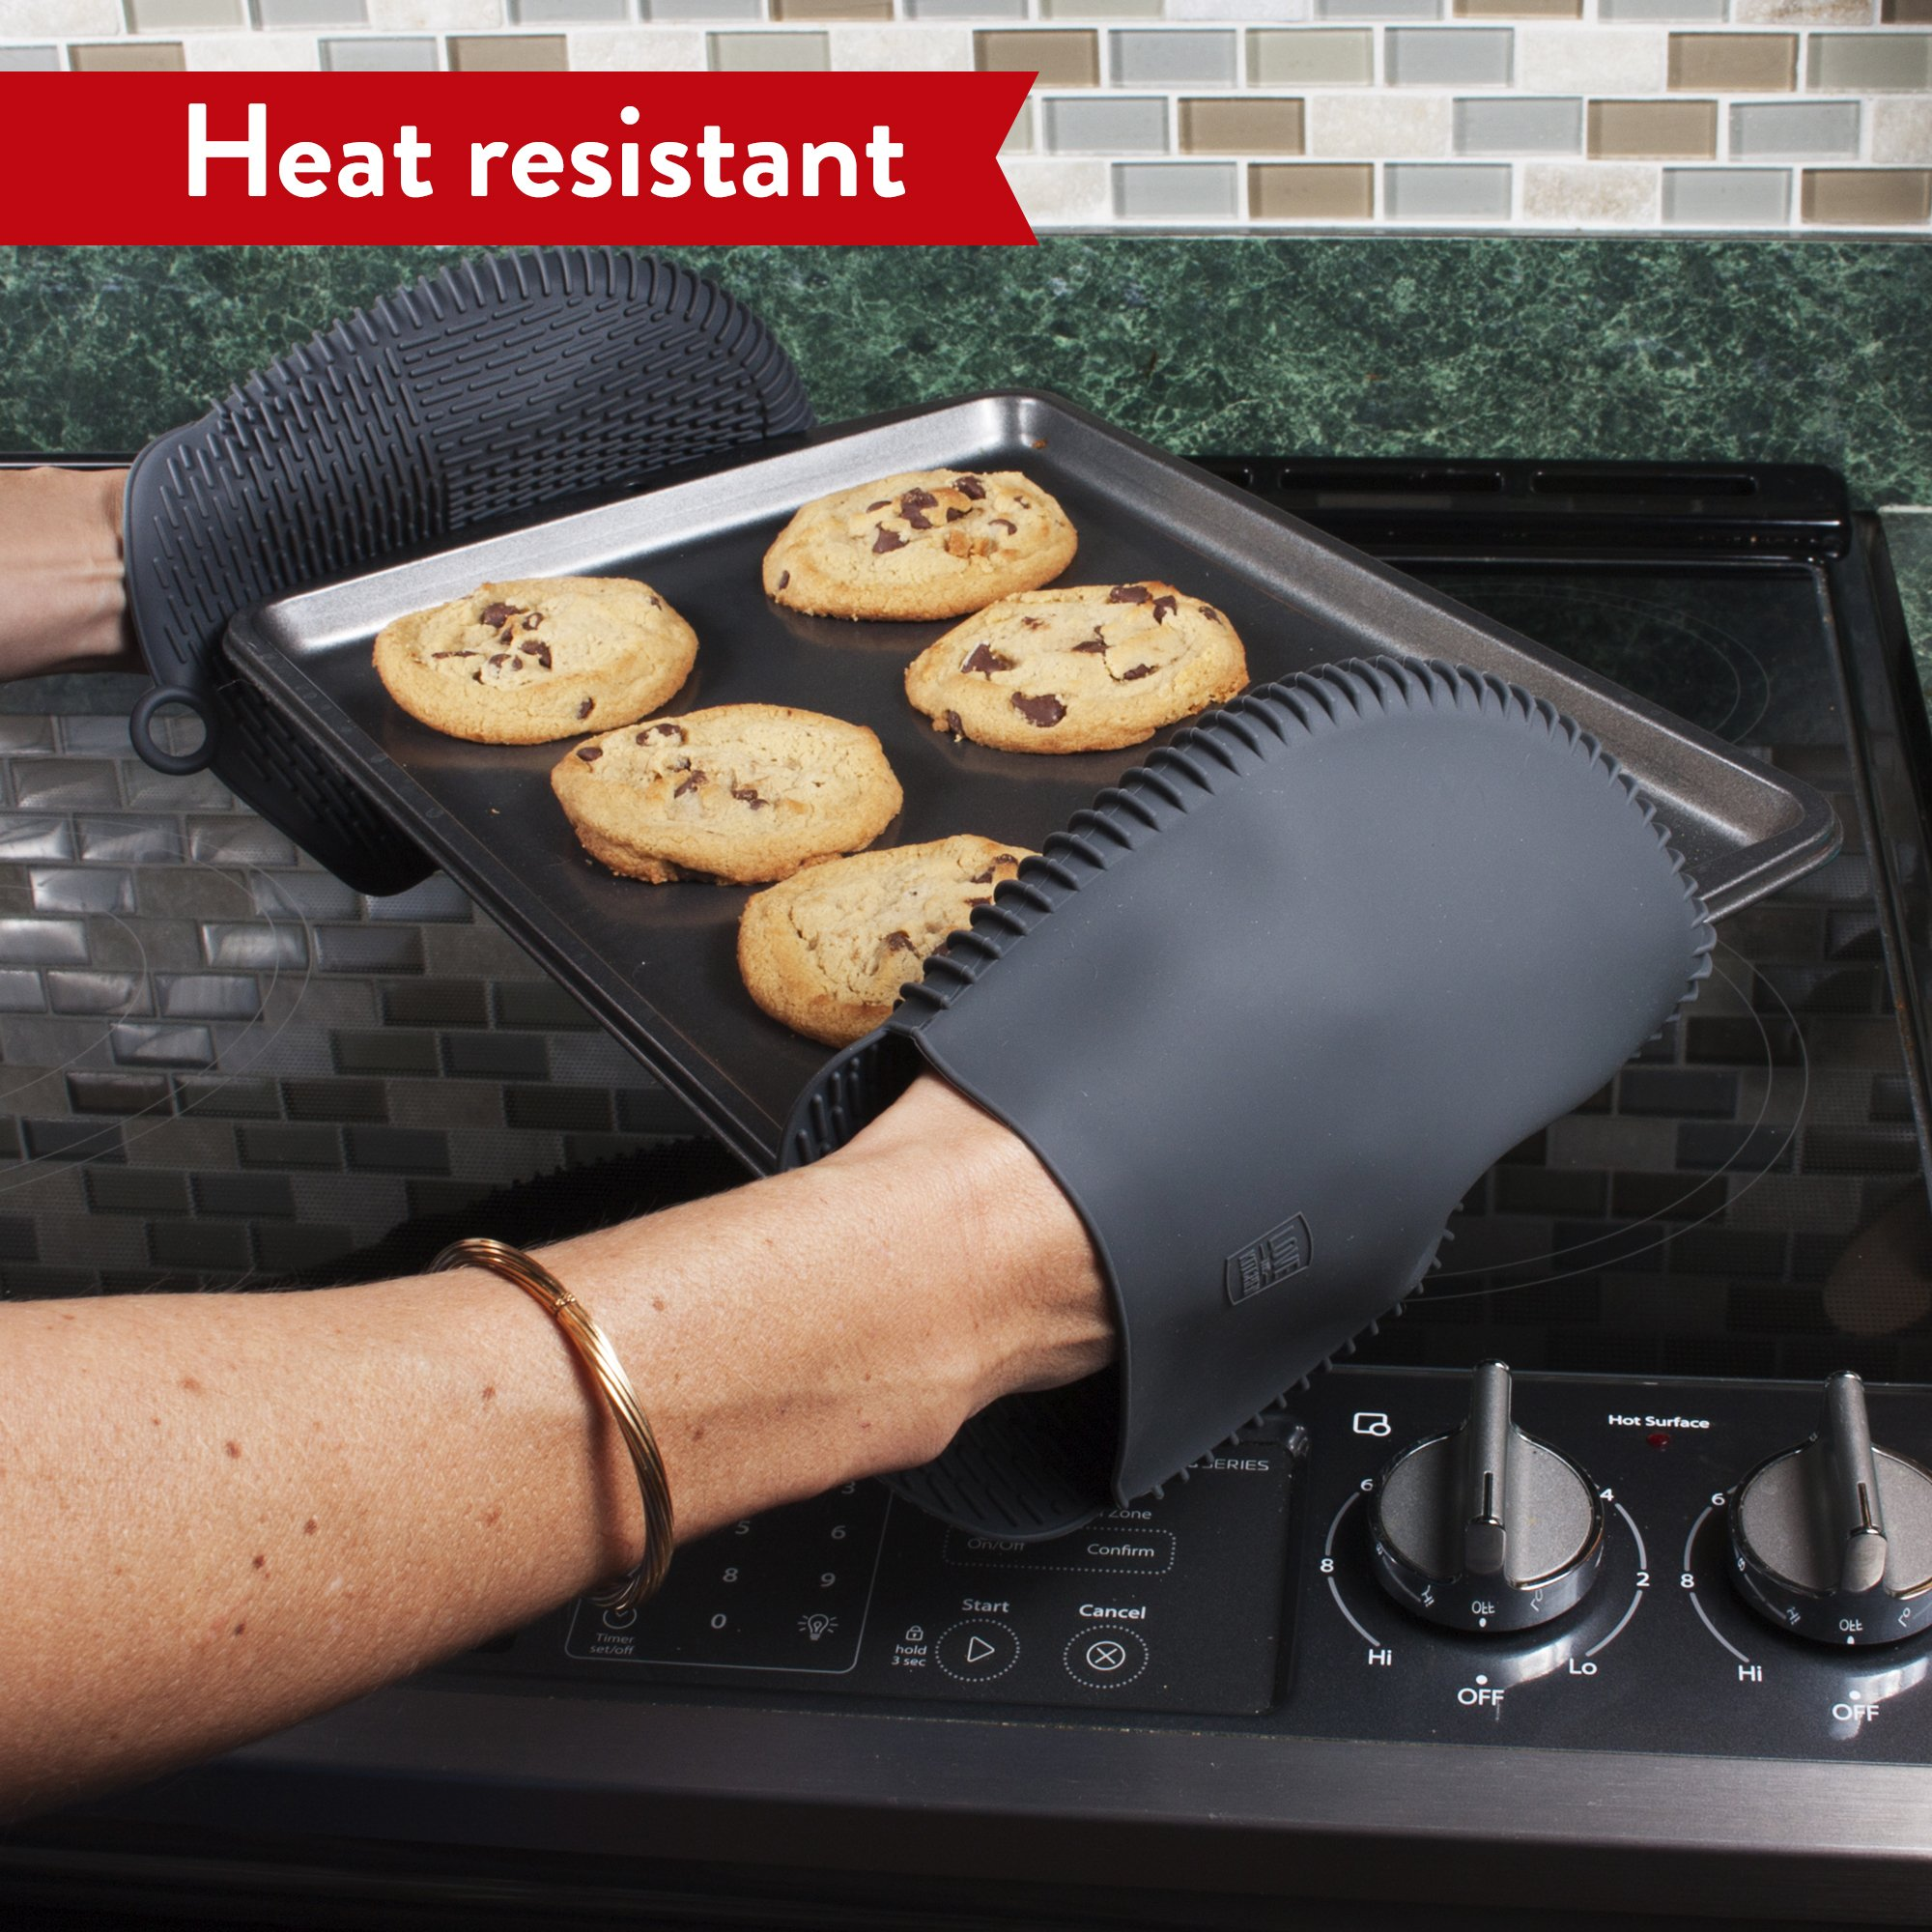 The Ultimate Pot Holders / Oven Mitts | 100% Silicone Mitt is Healthier Than Cotton & Easier to Clean, Won't Grow Mold or Bacteria | Unique Design Makes it Safe, Non-Slip & Flexible (Gray, Set of 2) by Love This Kitchen (Image #4)